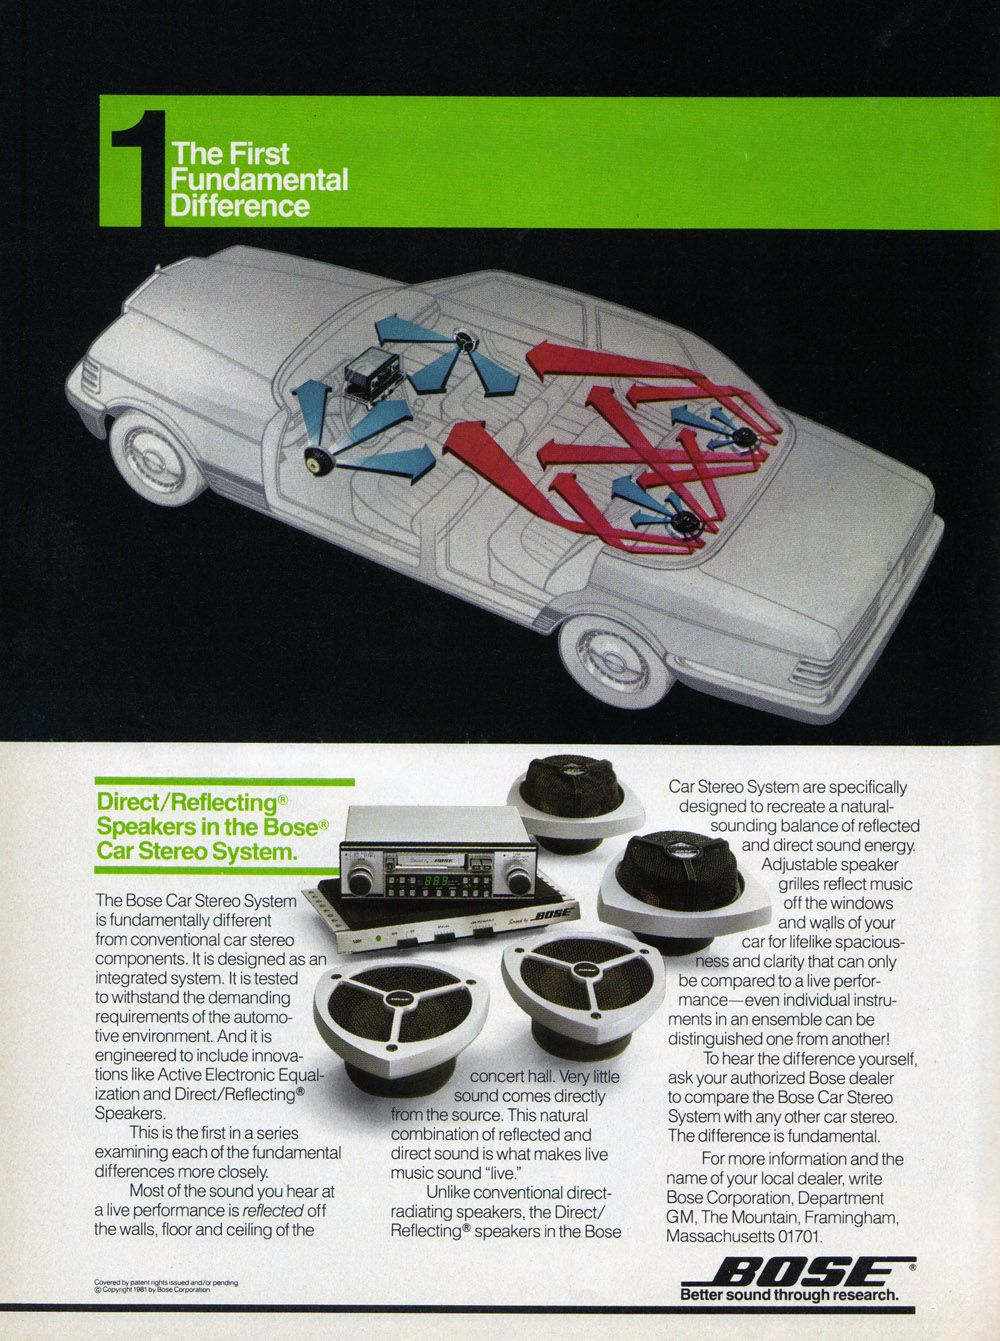 c501fbb3c38 The First Fundamental Difference With Bose Car Audio Source: Games,  November-December 1981